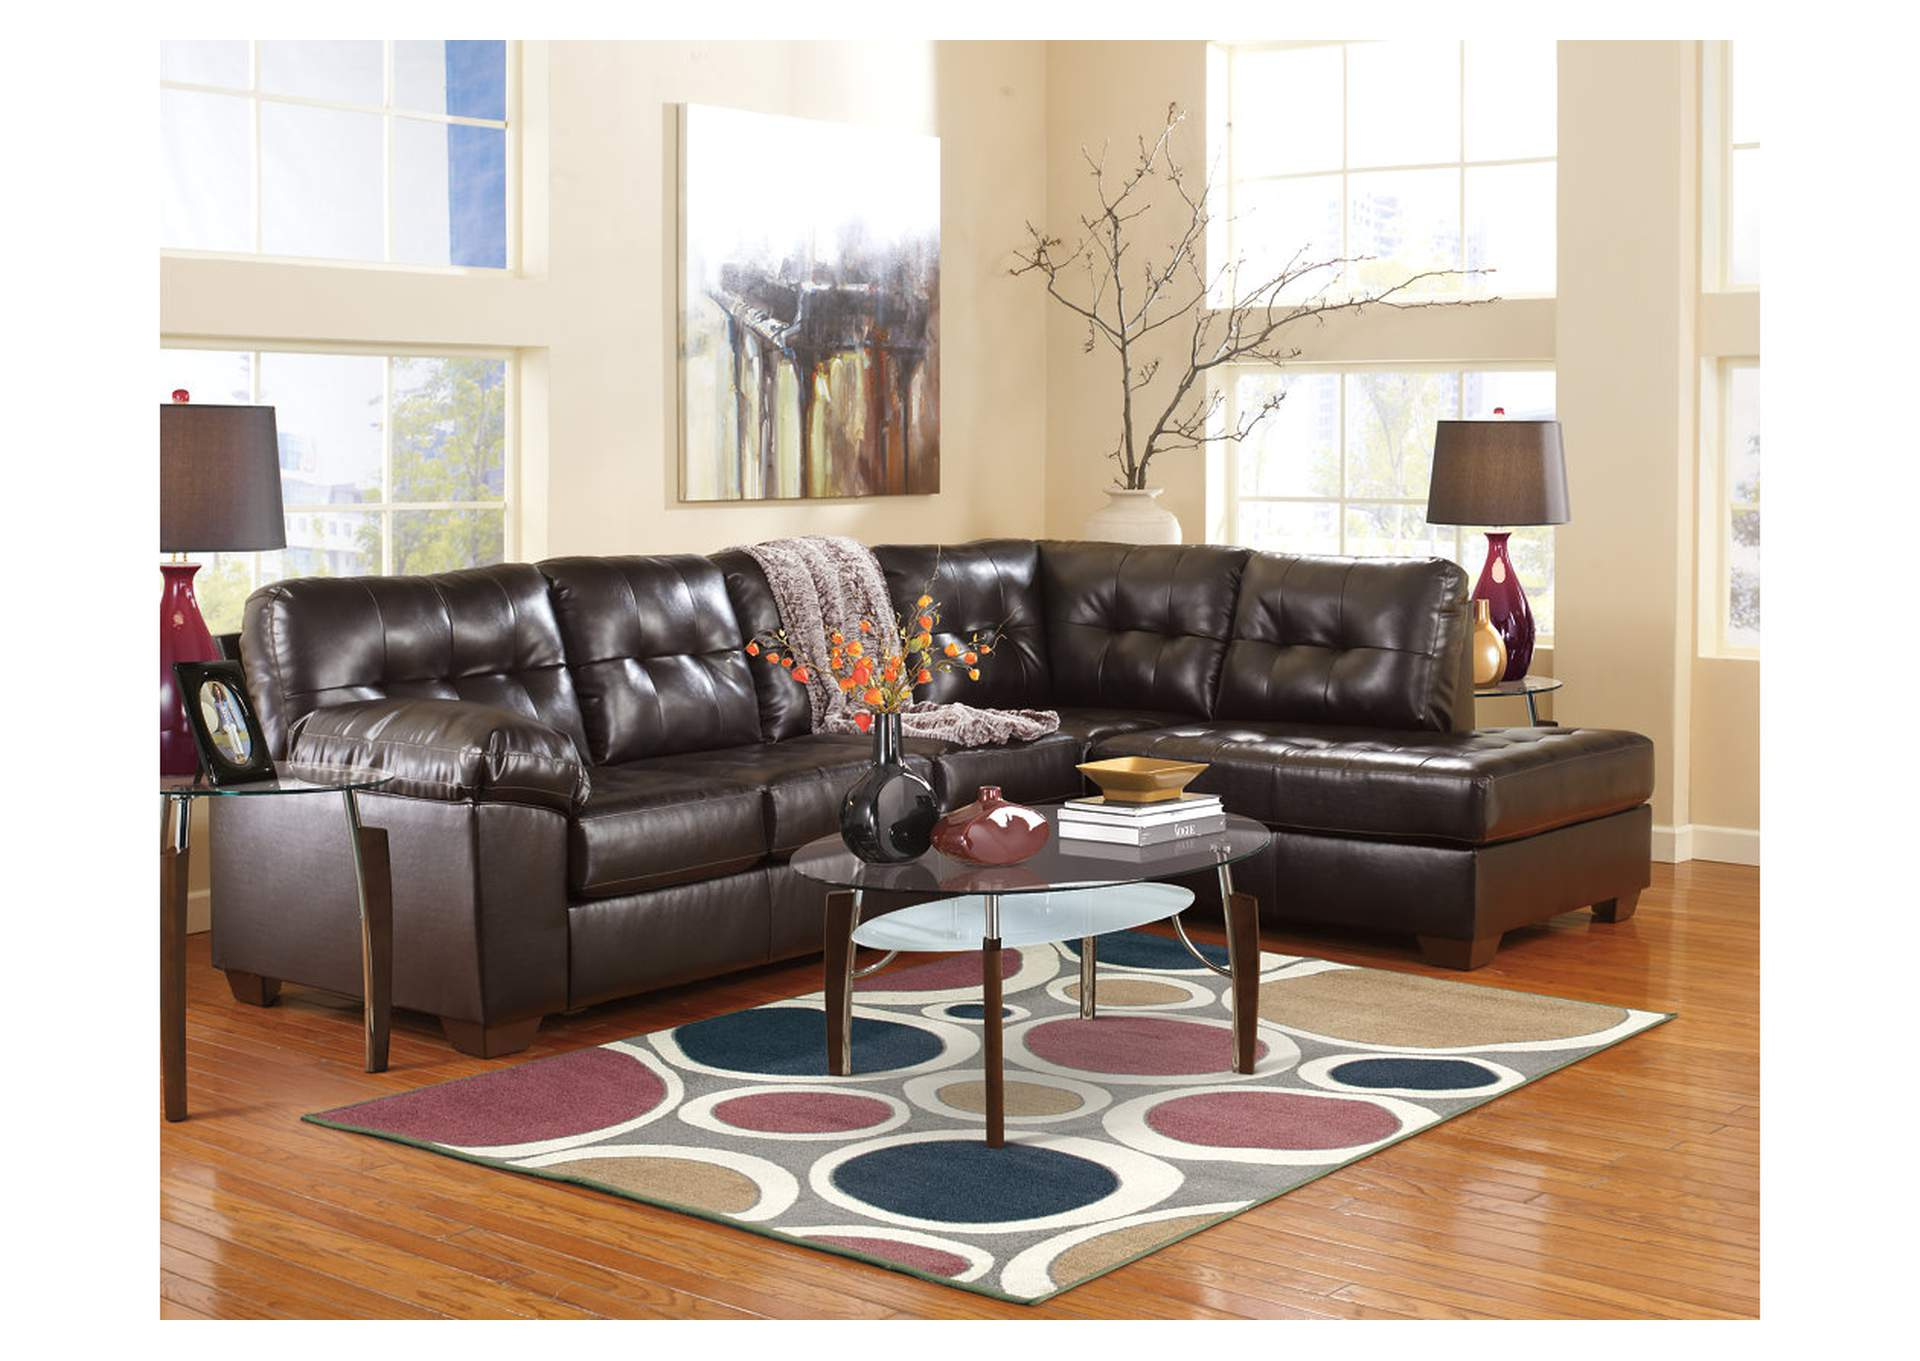 Alliston DuraBlend Chocolate RAF Chaise End Sectional,Signature Design By Ashley